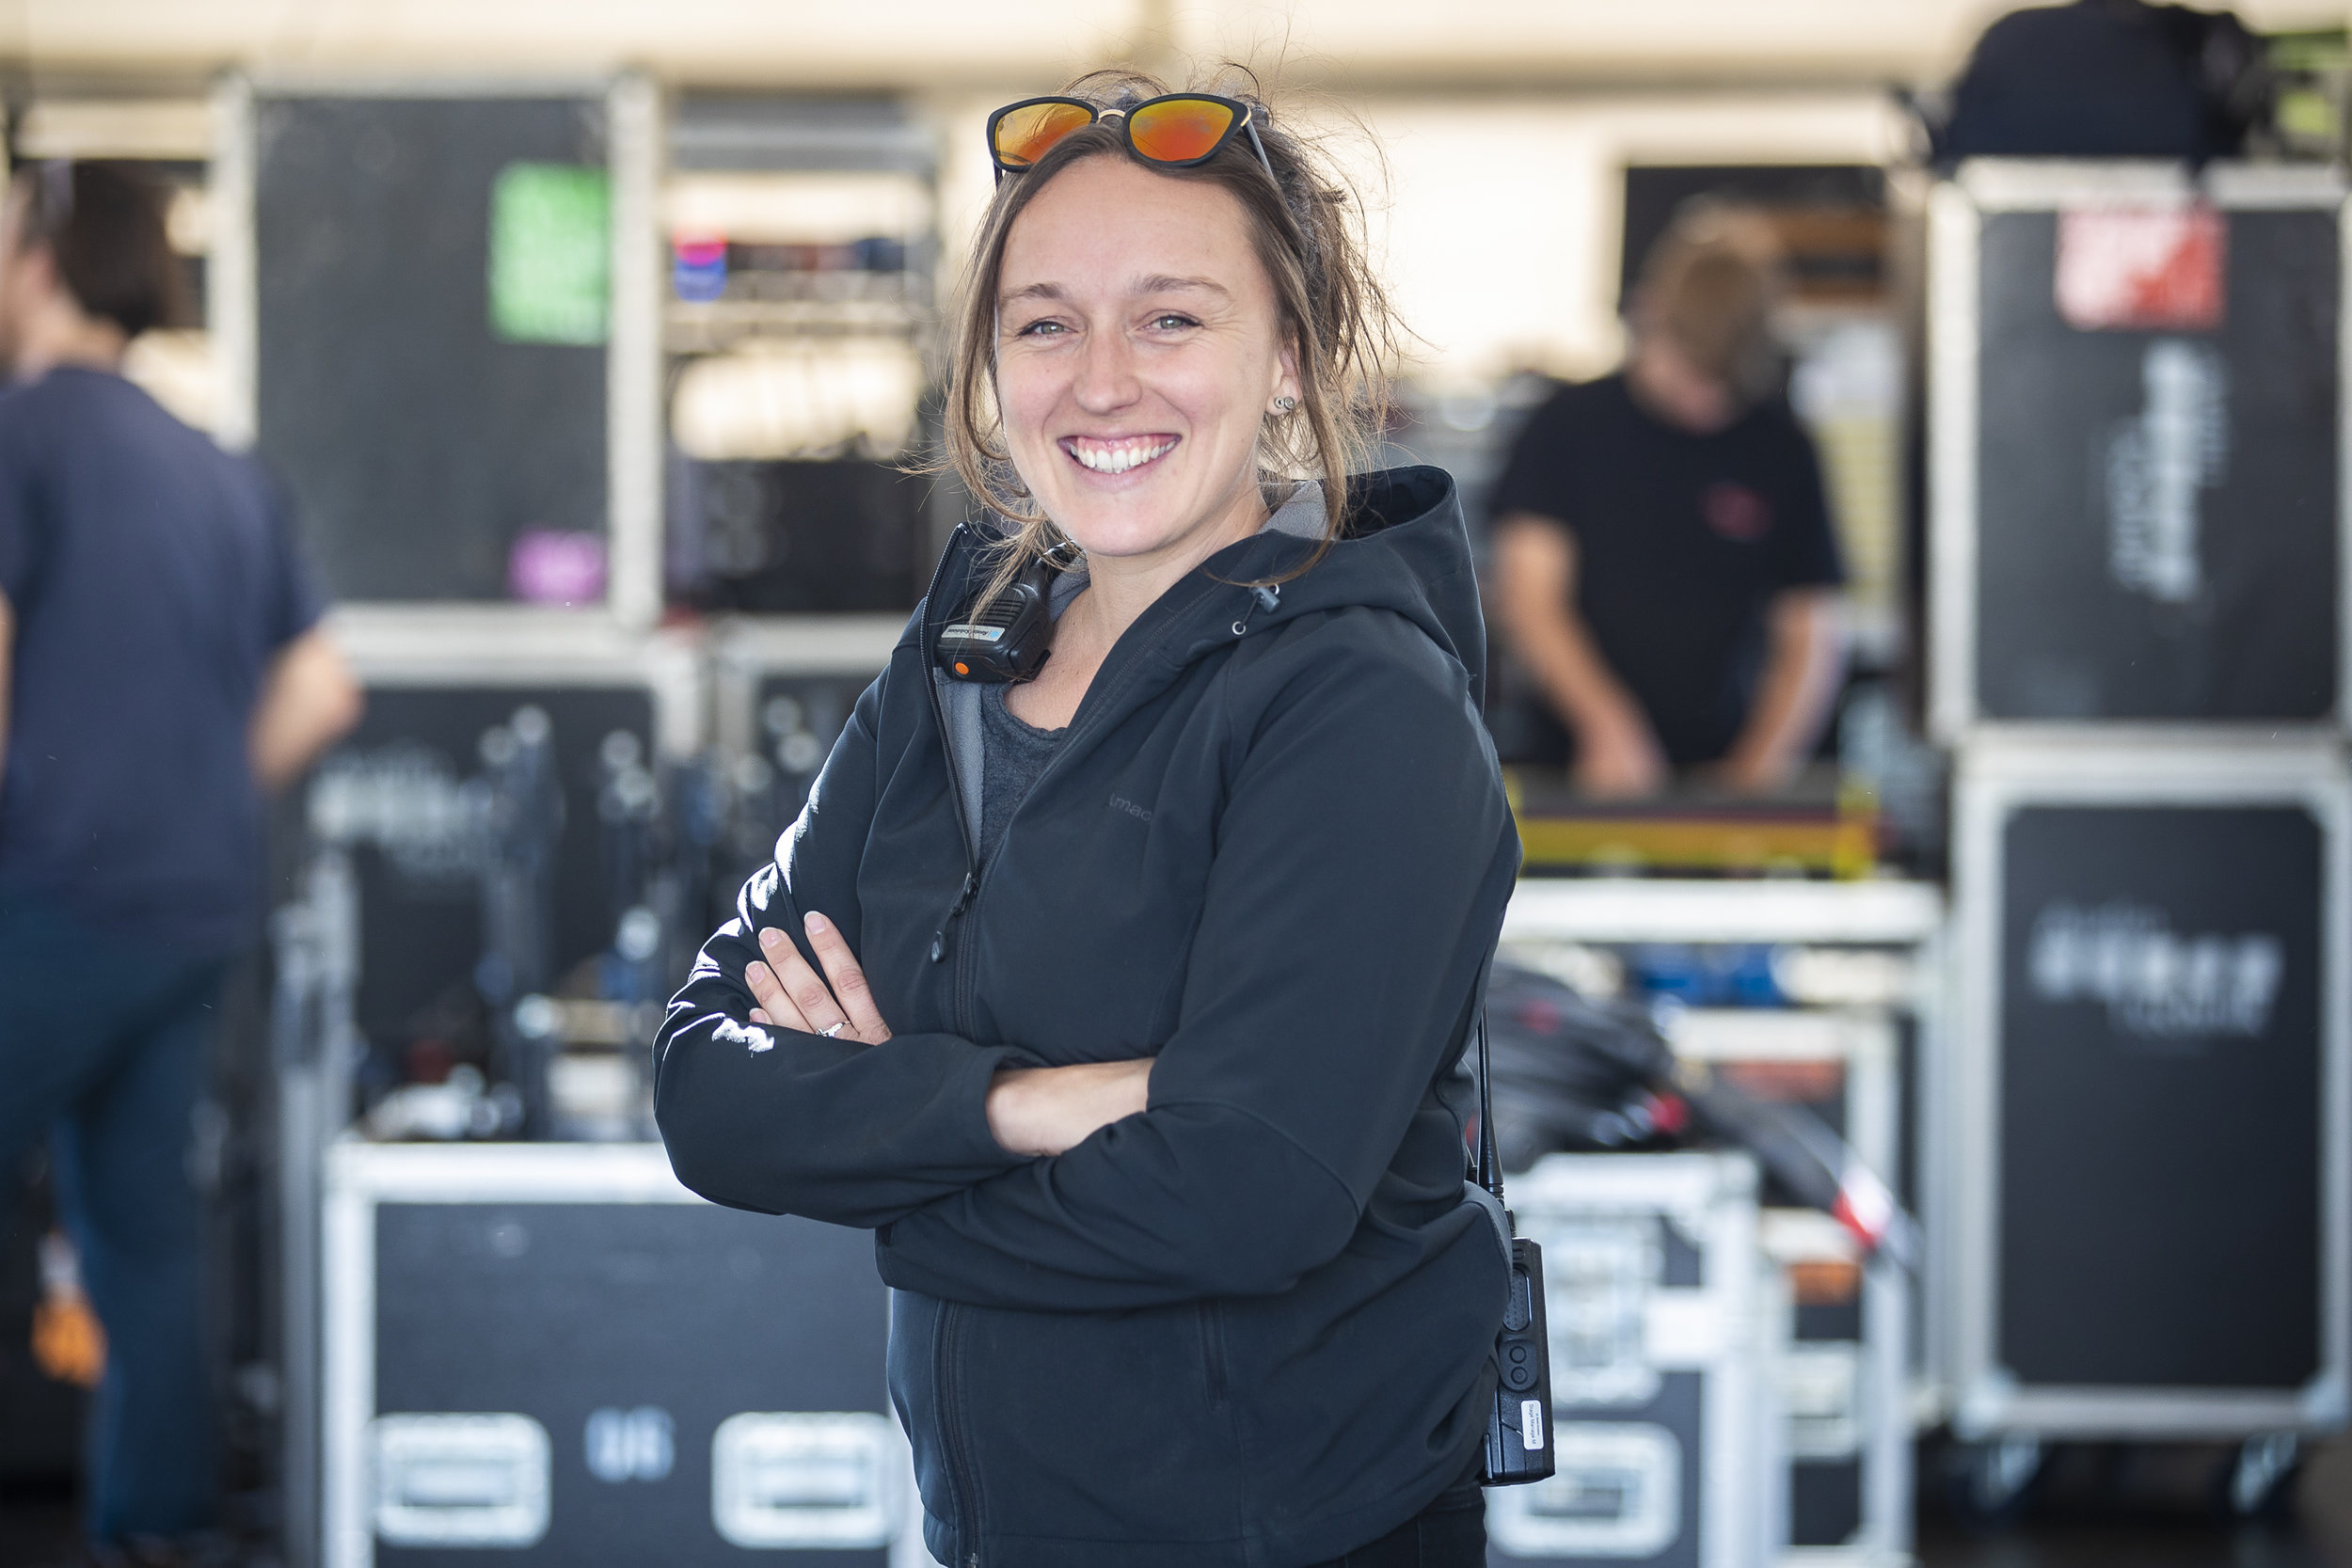 Production manager Emma Hawkes looks up to any woman touring in the